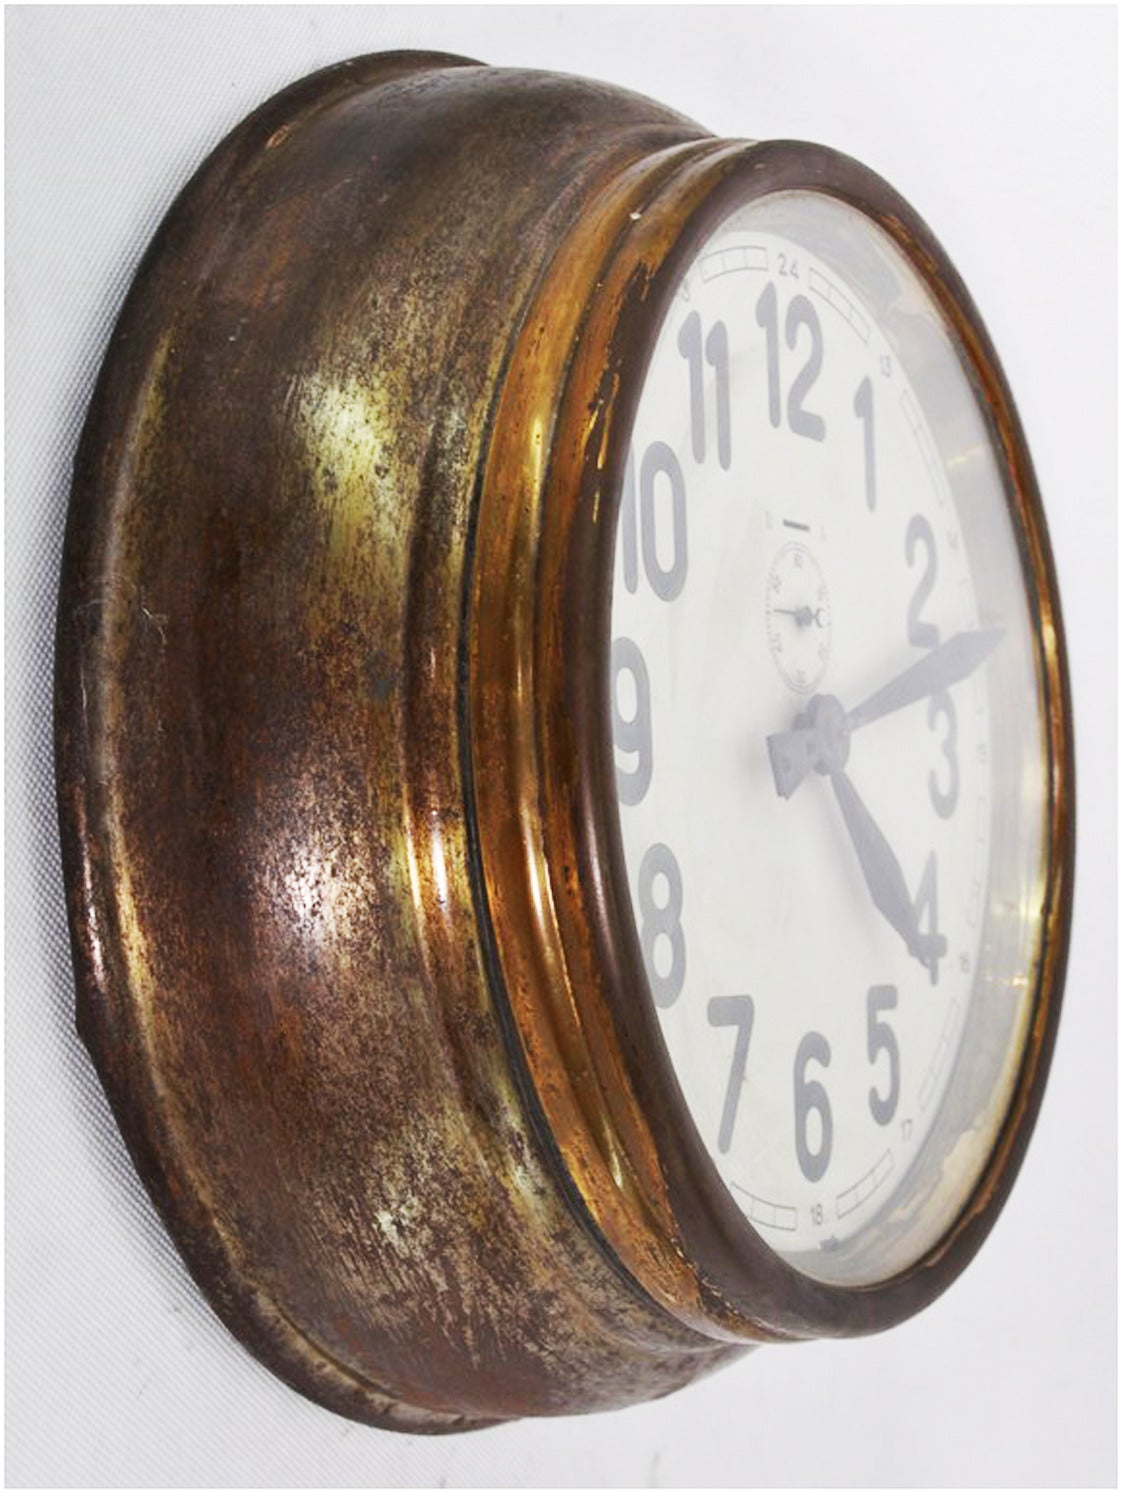 The clock is in perfect vintage condition, no major scratches, no glass scratched. Formerly a slave clock, it is now fitted with a modern quartz movement with a battery.